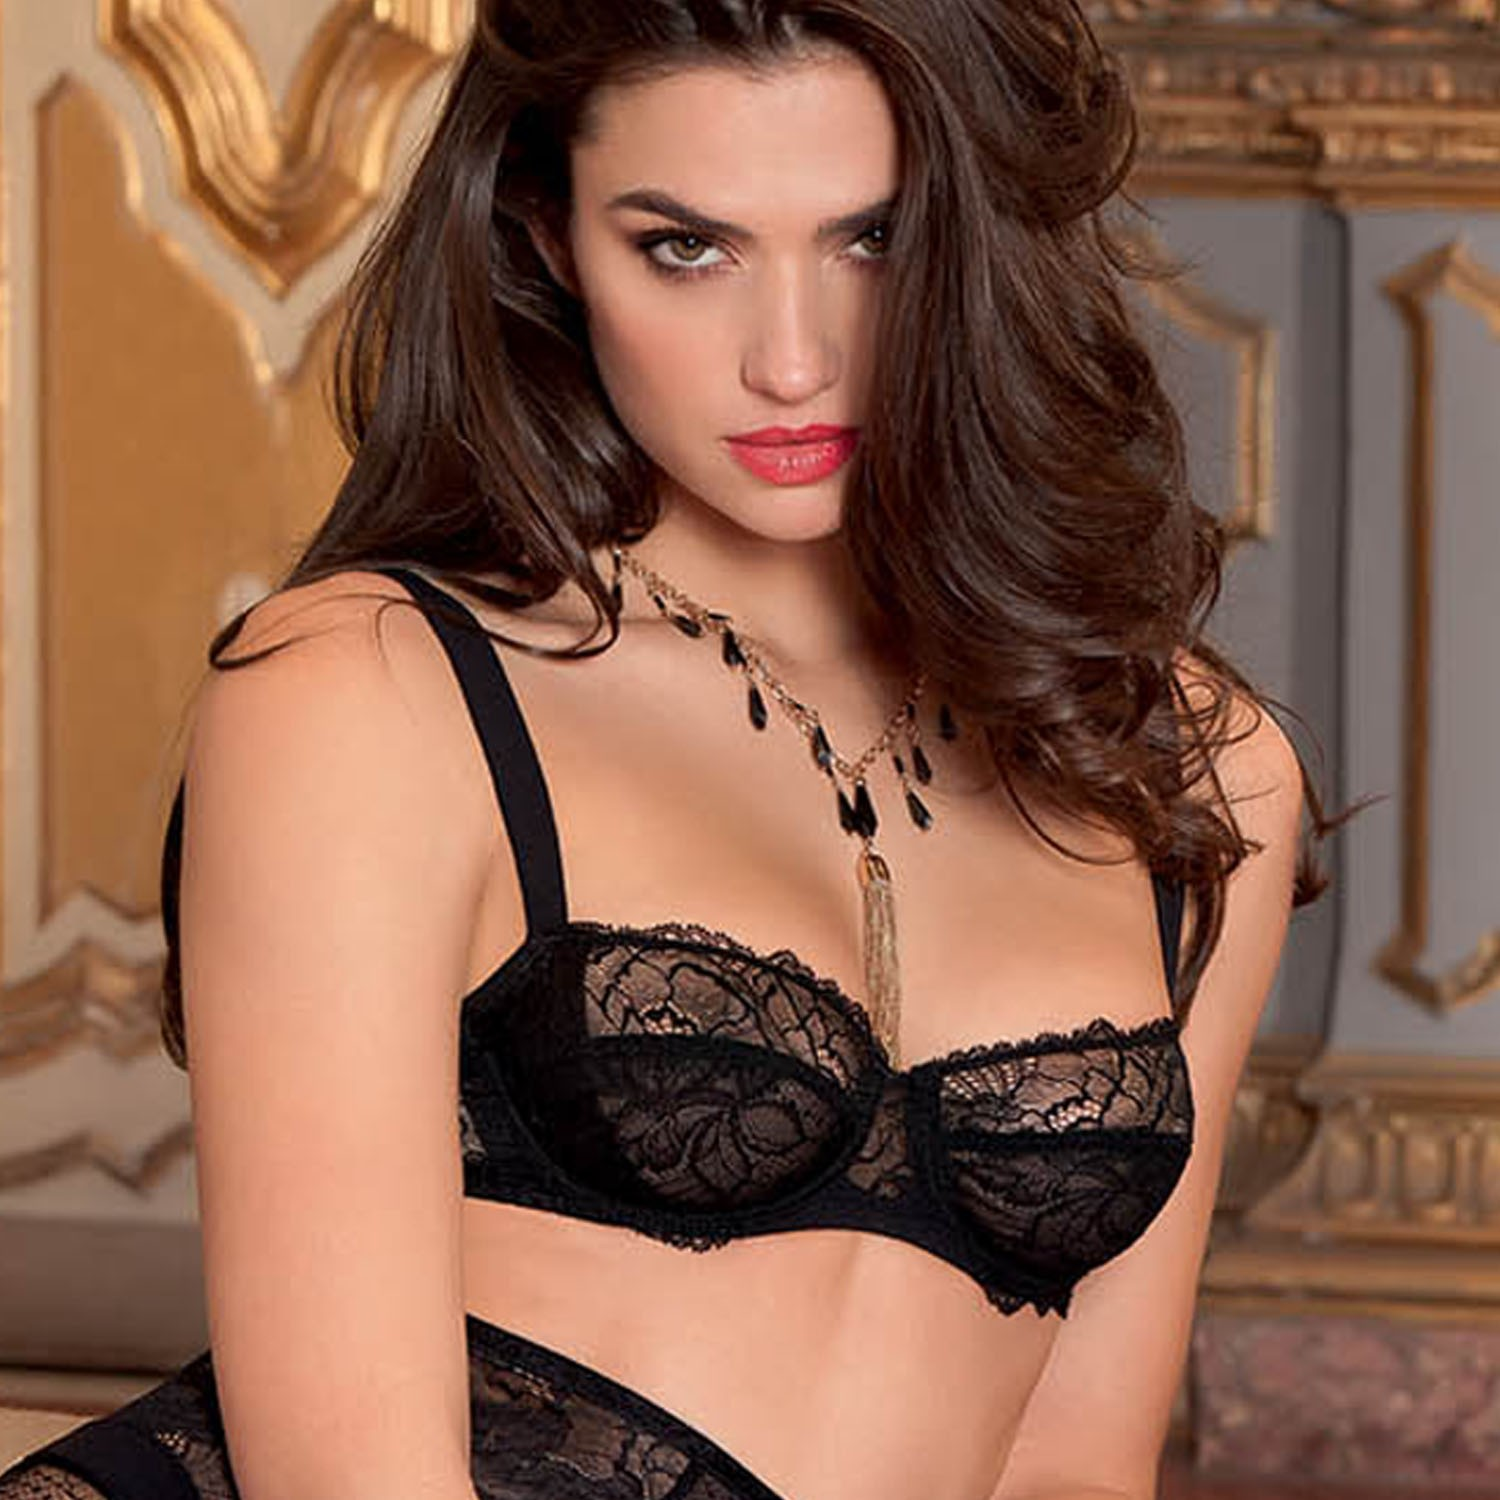 lise charmel lingerie. Black Bedroom Furniture Sets. Home Design Ideas